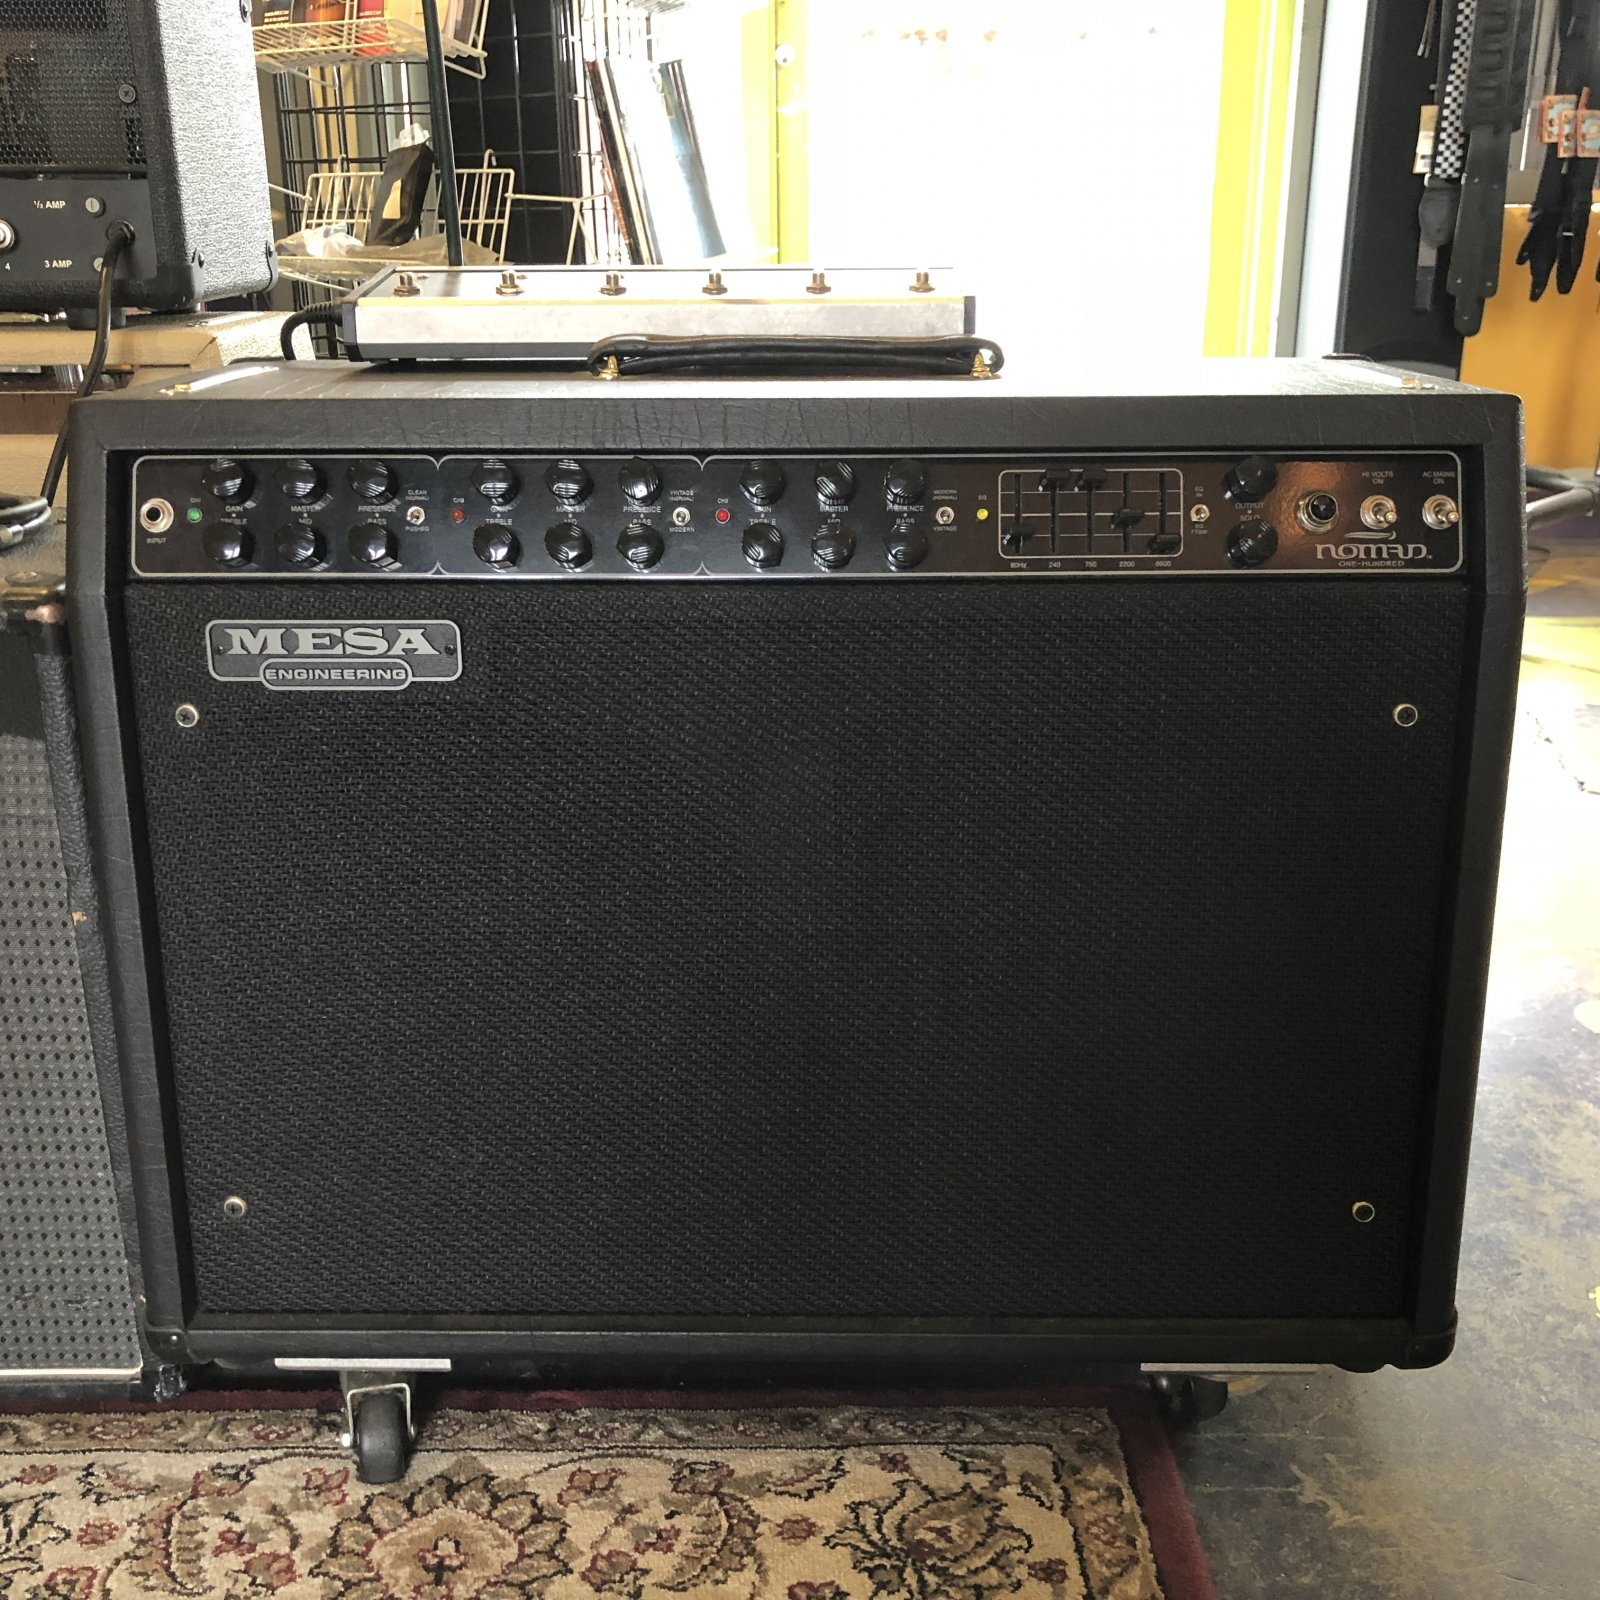 Mesa Boogie Nomad 100 2x12 Amplifier